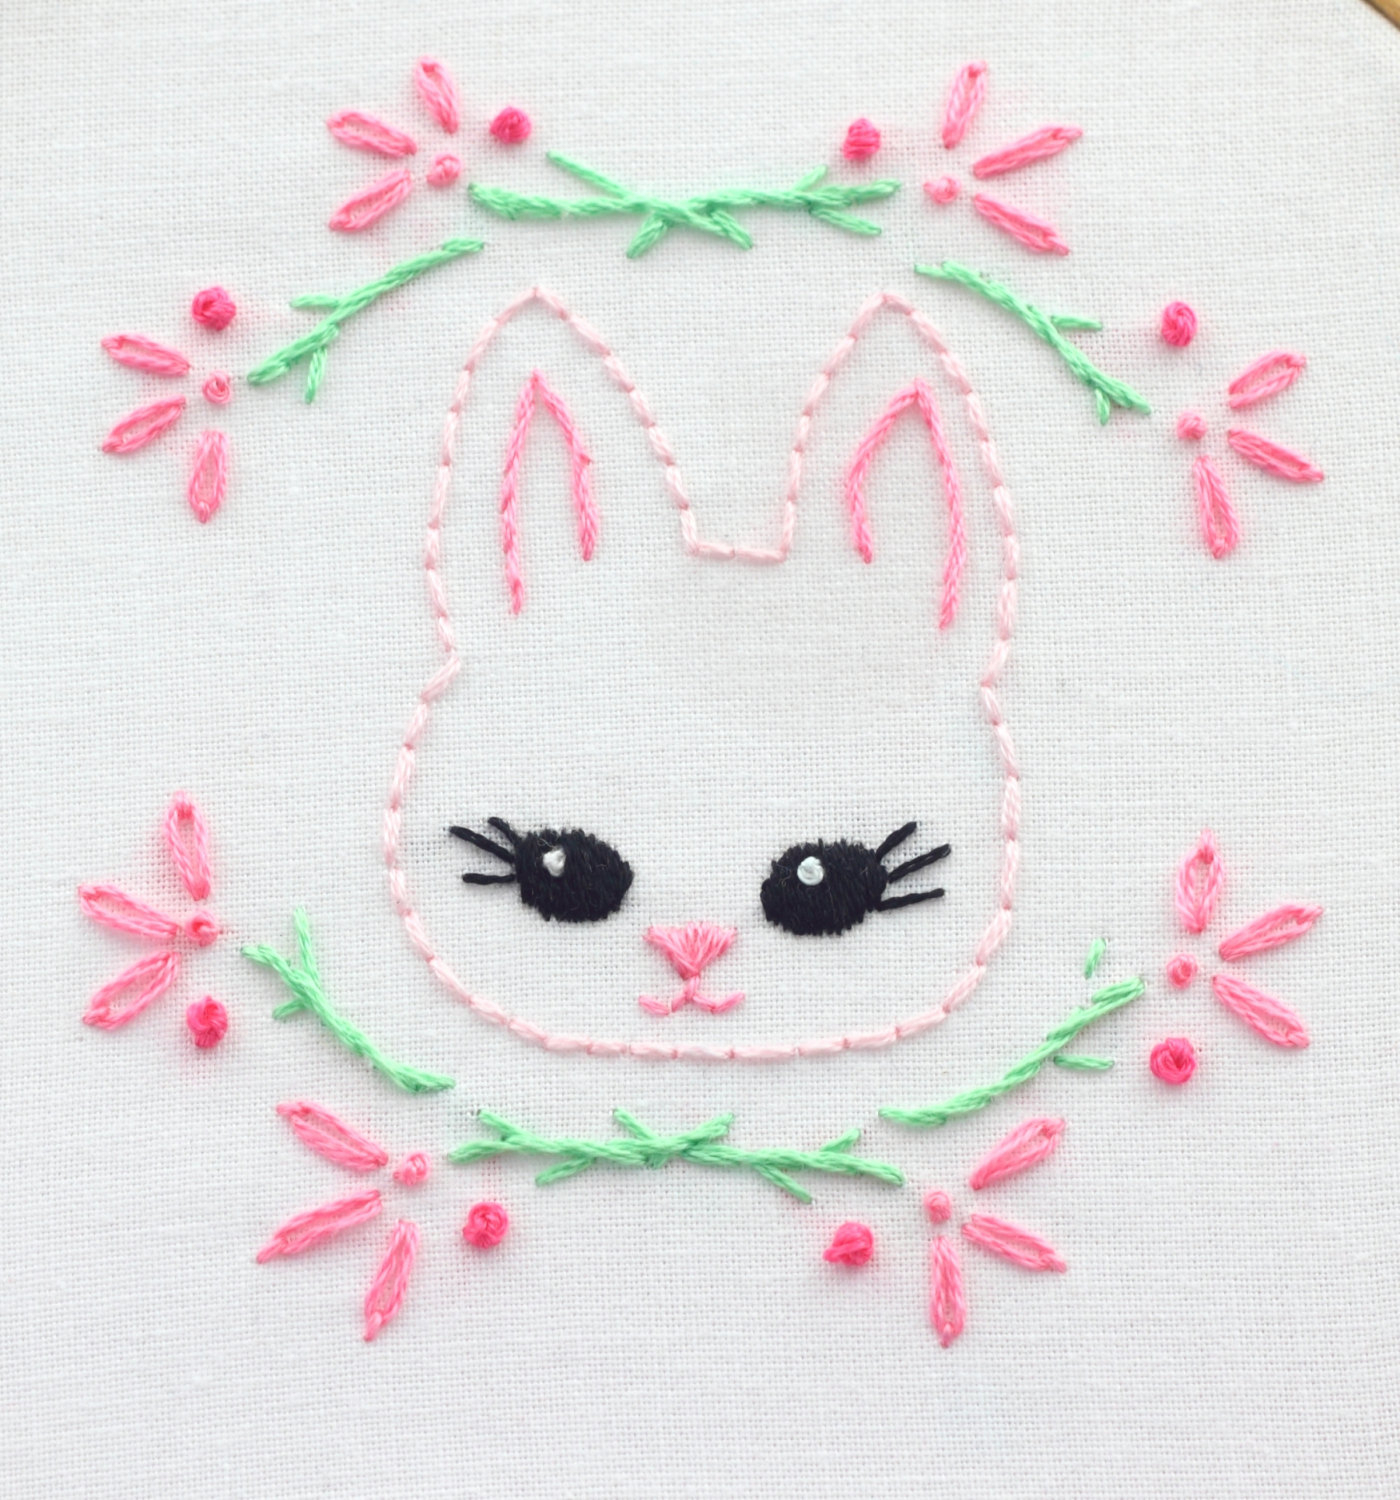 How To Design Embroidery Patterns By Hand Ba Girl Embroidery Design Ba Embroidery Pattern Hand Embroidery Girl